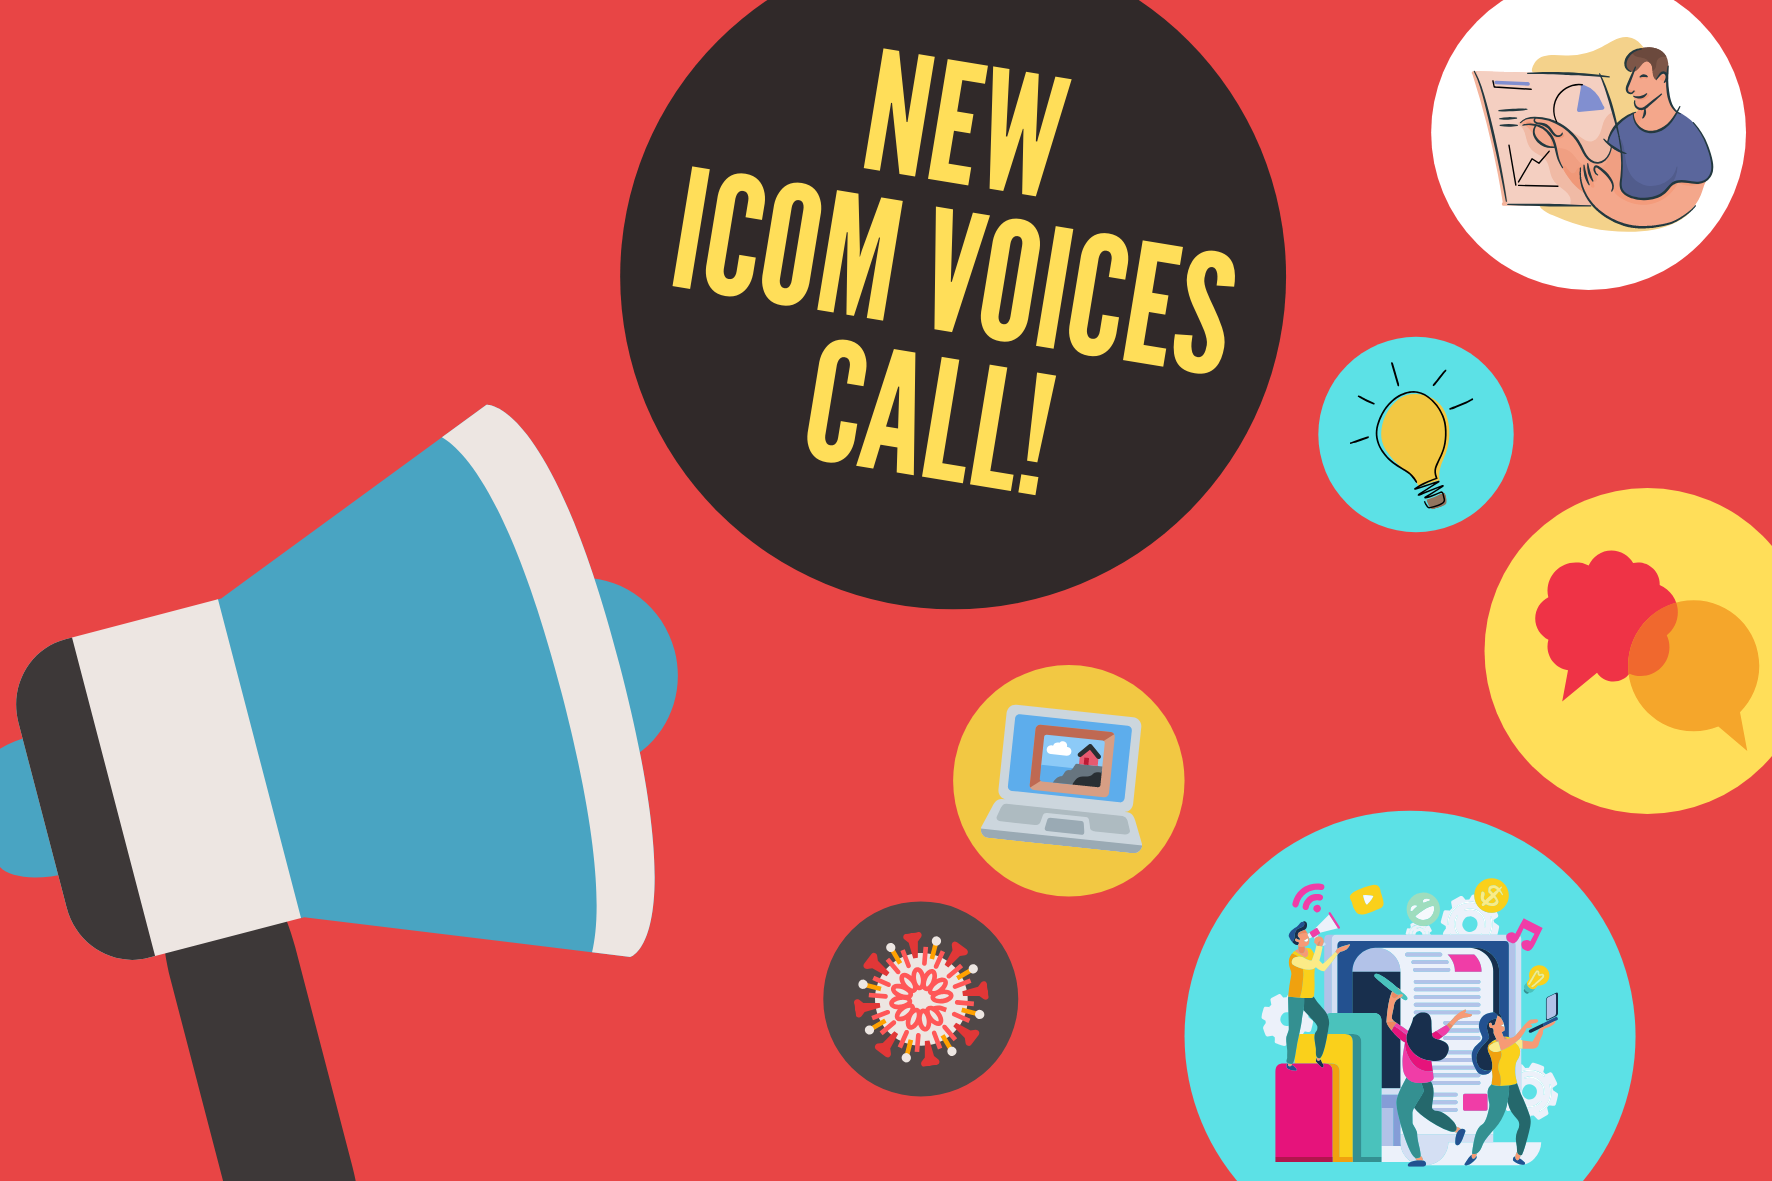 Share your experiences on ICOM Voices